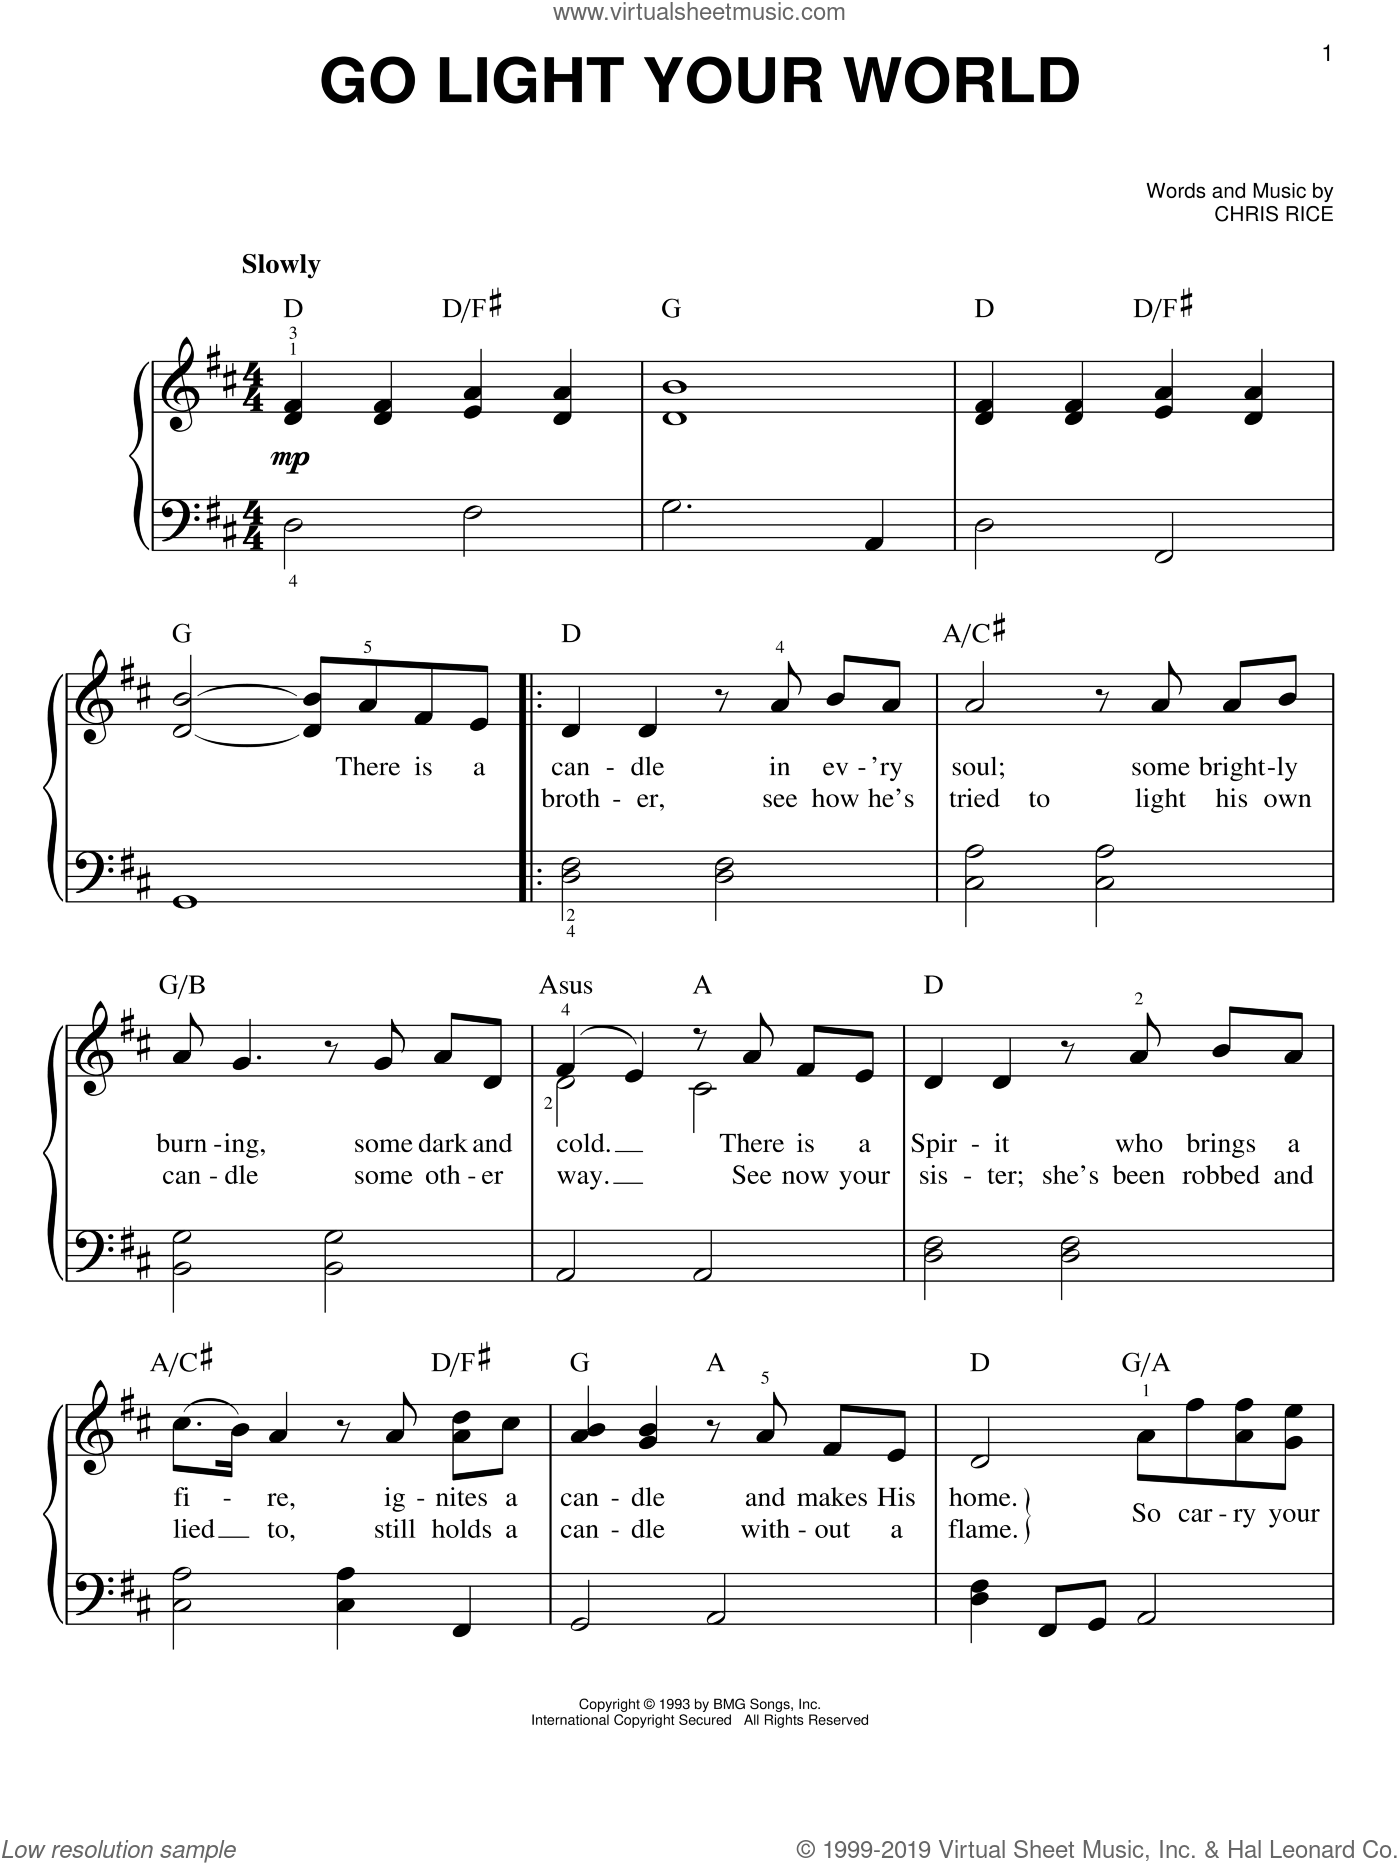 Go Light Your World sheet music for piano solo by Kathy Troccoli and Chris Rice, easy skill level